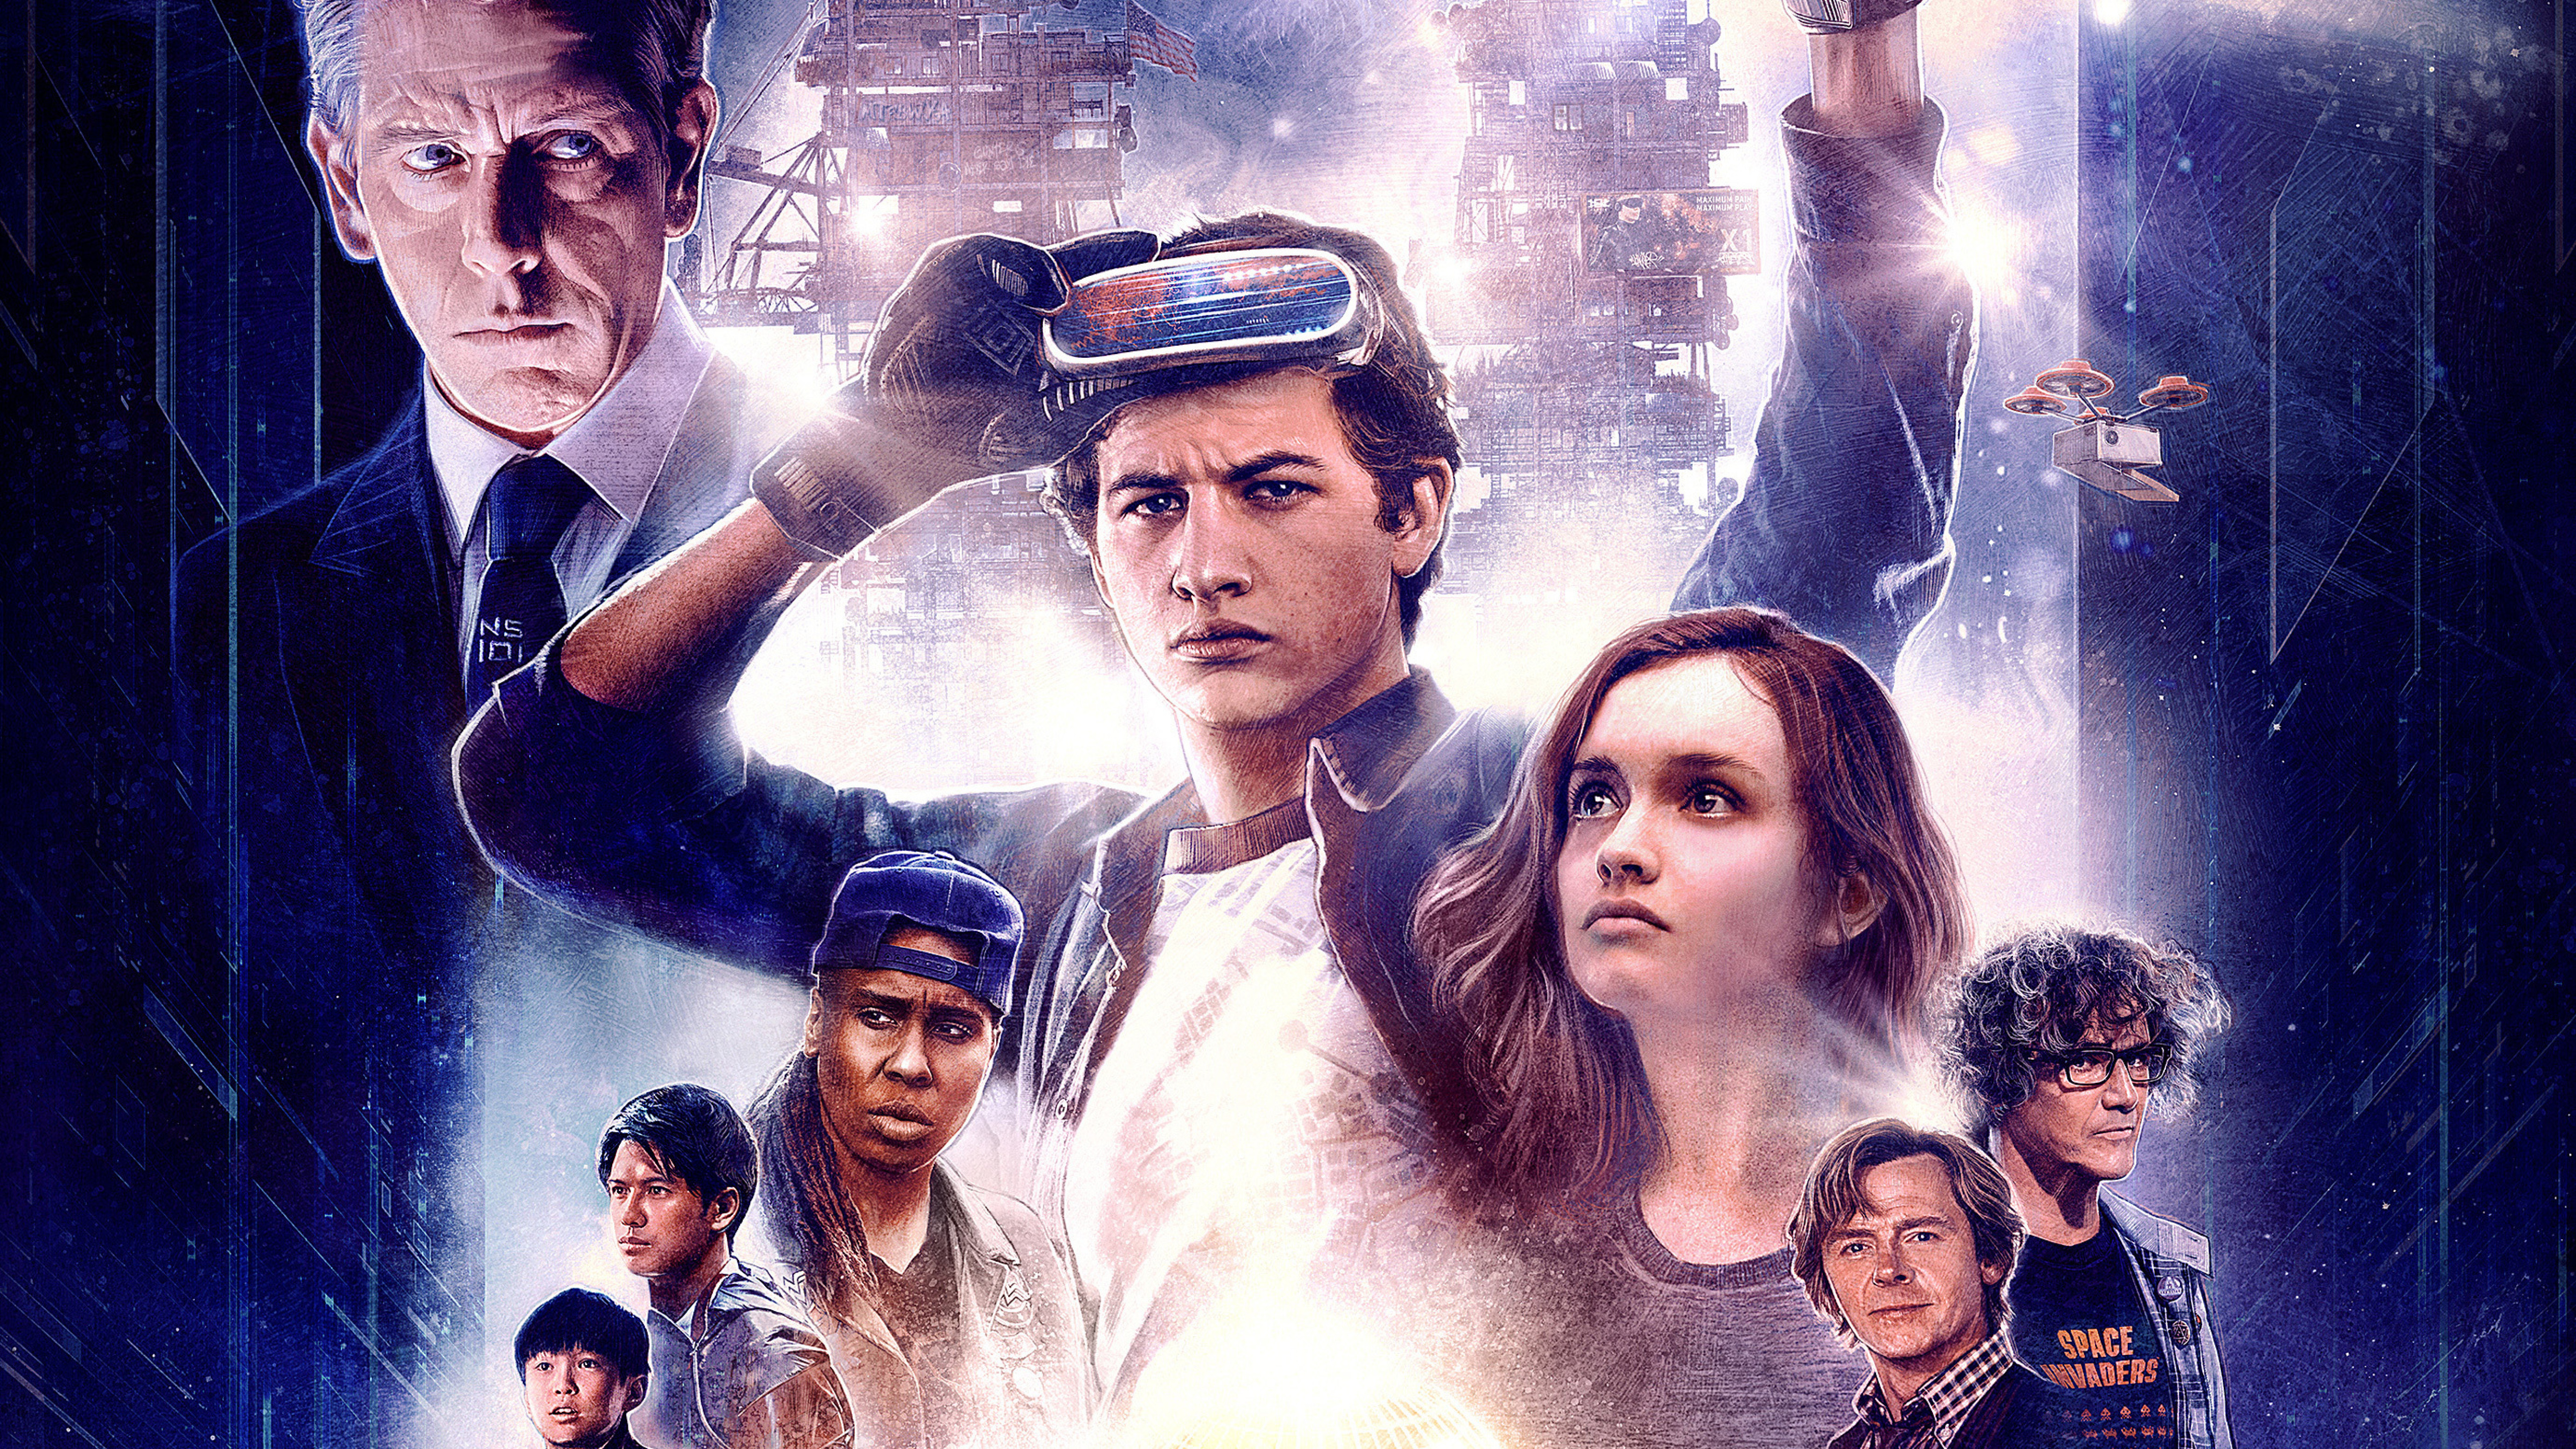 5120x2880 Ready Player One Movie Poster 2018 5K Wallpaper ...